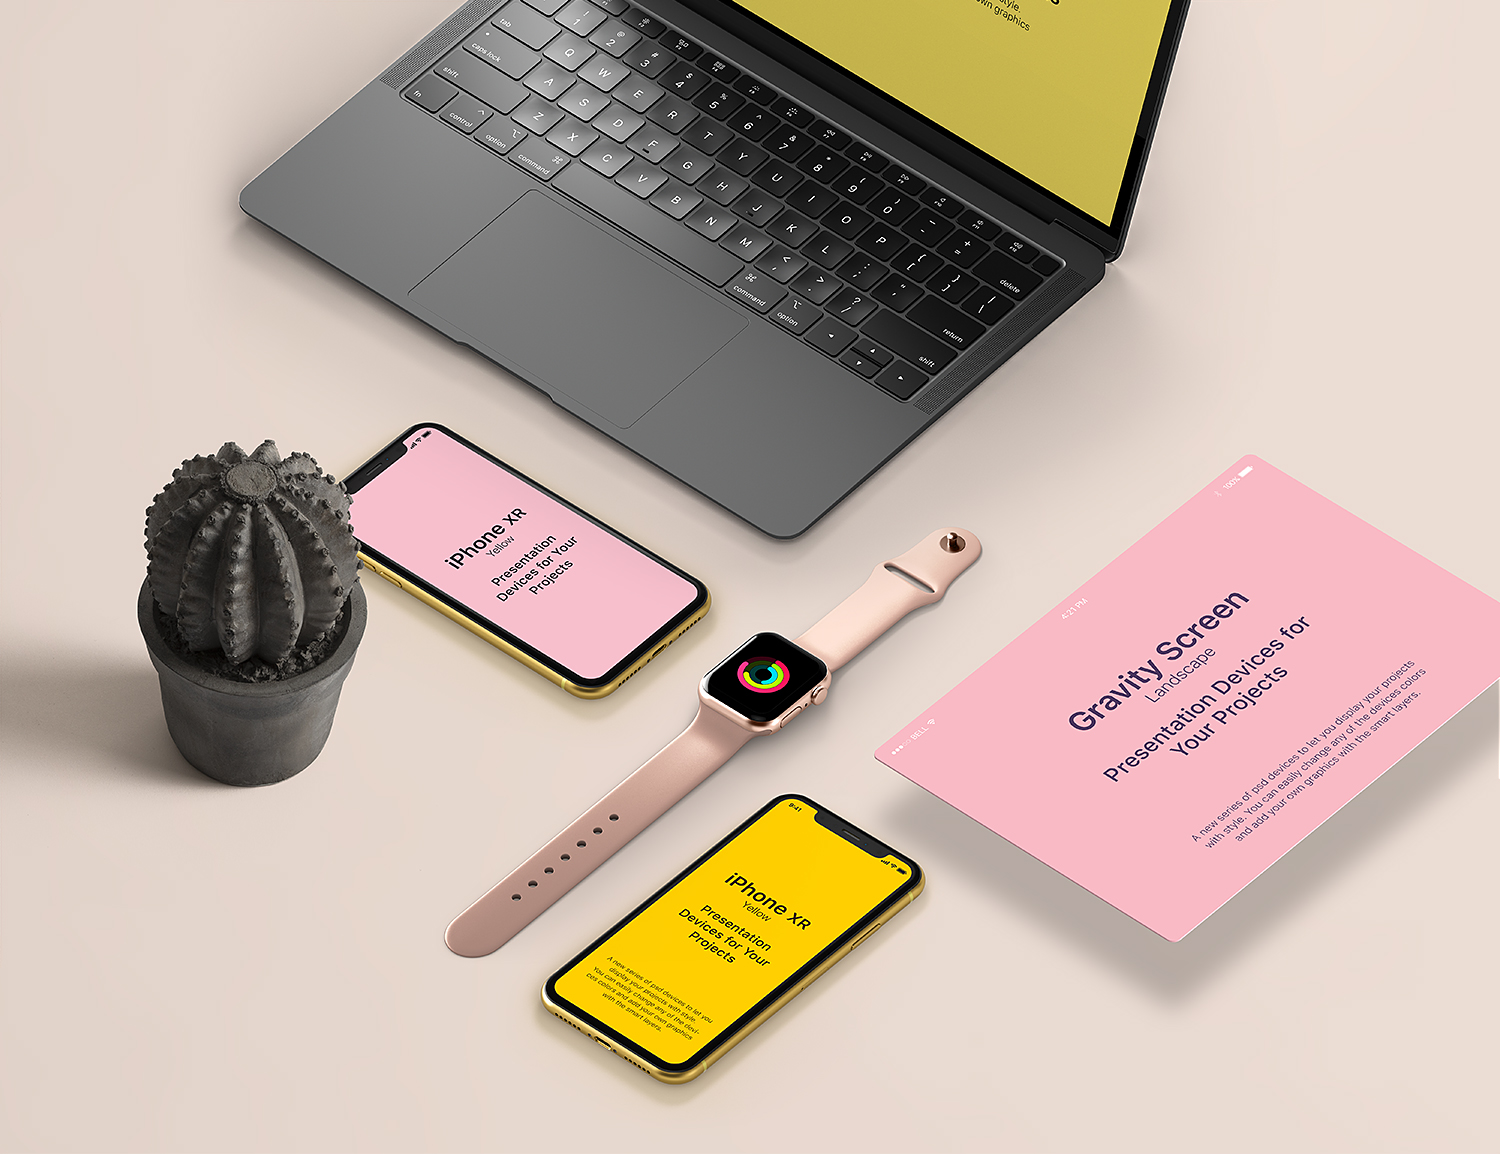 Apple's Devices Free Mockup for Project Showcase